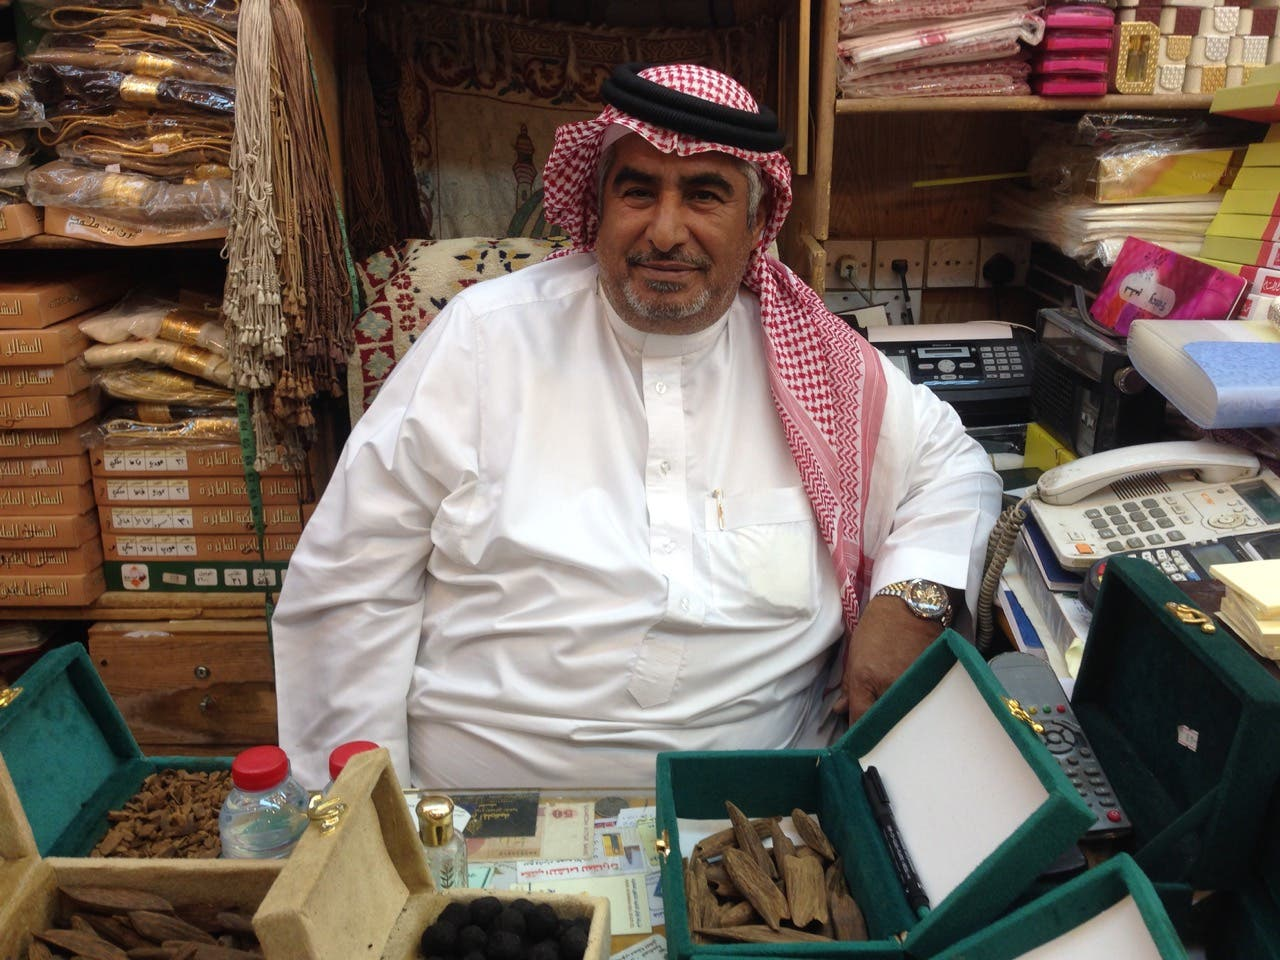 Musaad Mujahed, one of the souk's veteran salesmen. (Photo: Miles Lawrence)